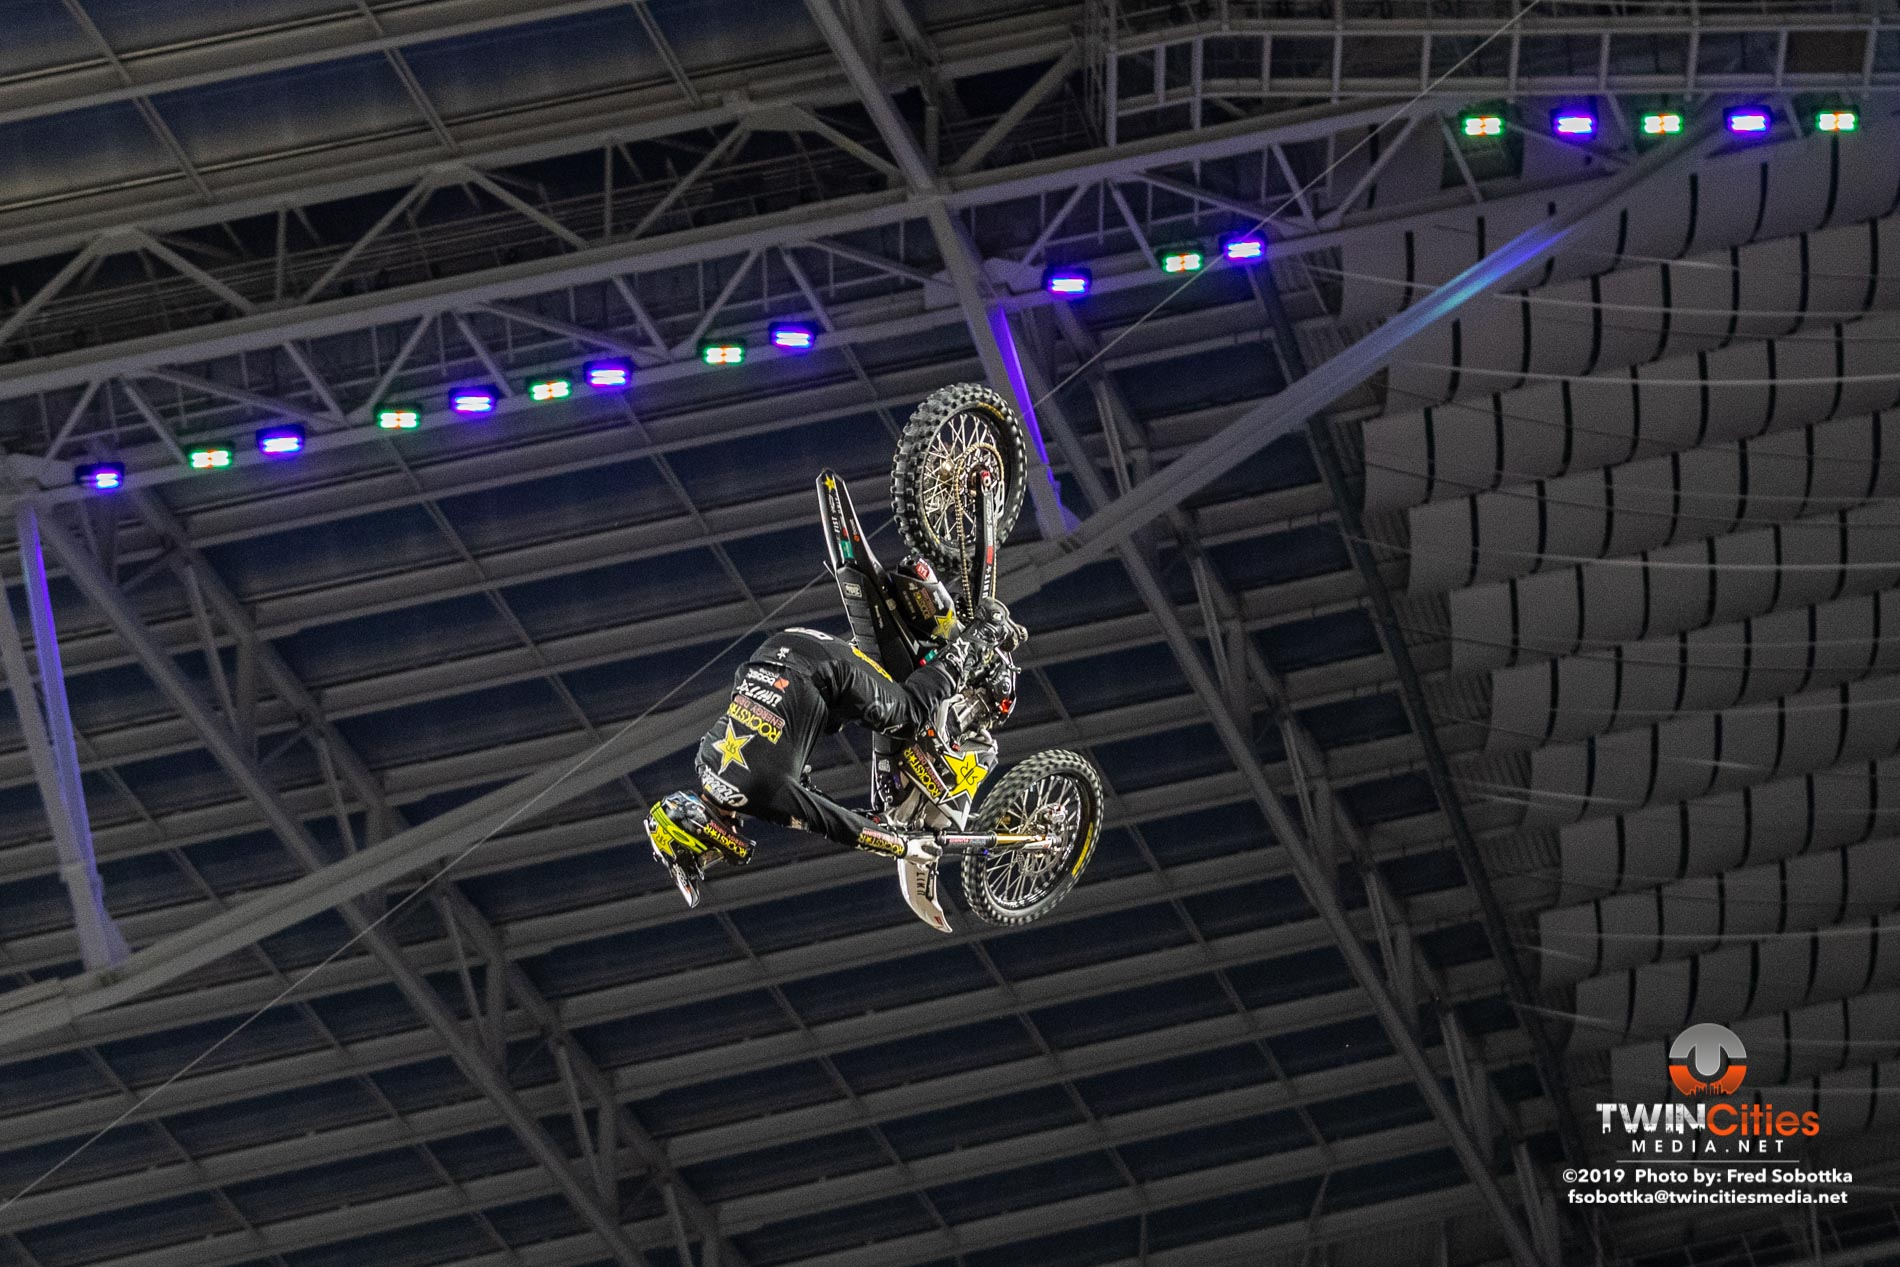 Moto-X-Quarterpipe-High-Air-05